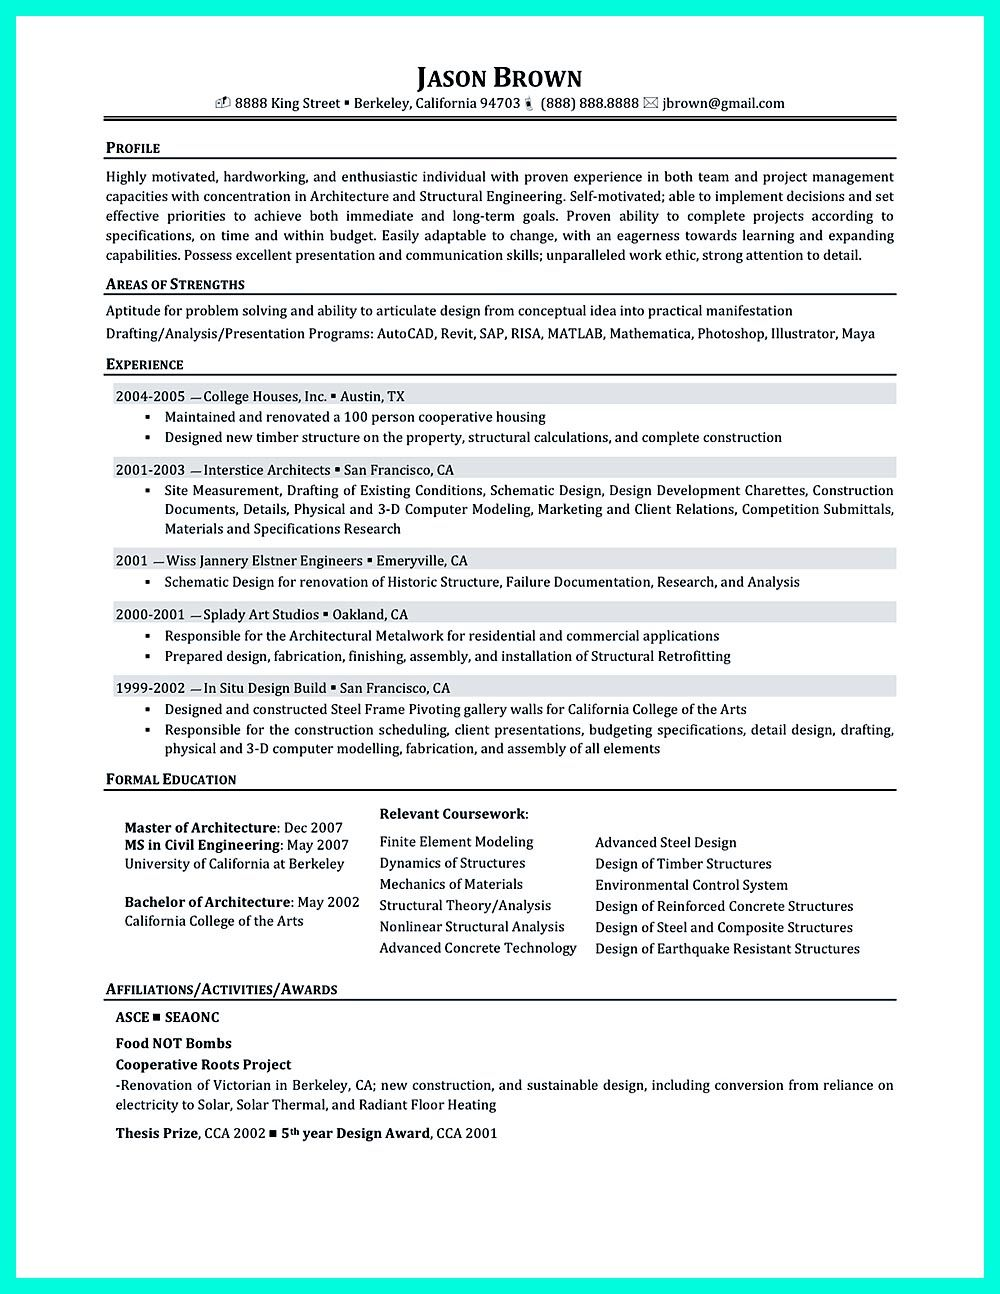 Construction management resume is designed for a professional who ...